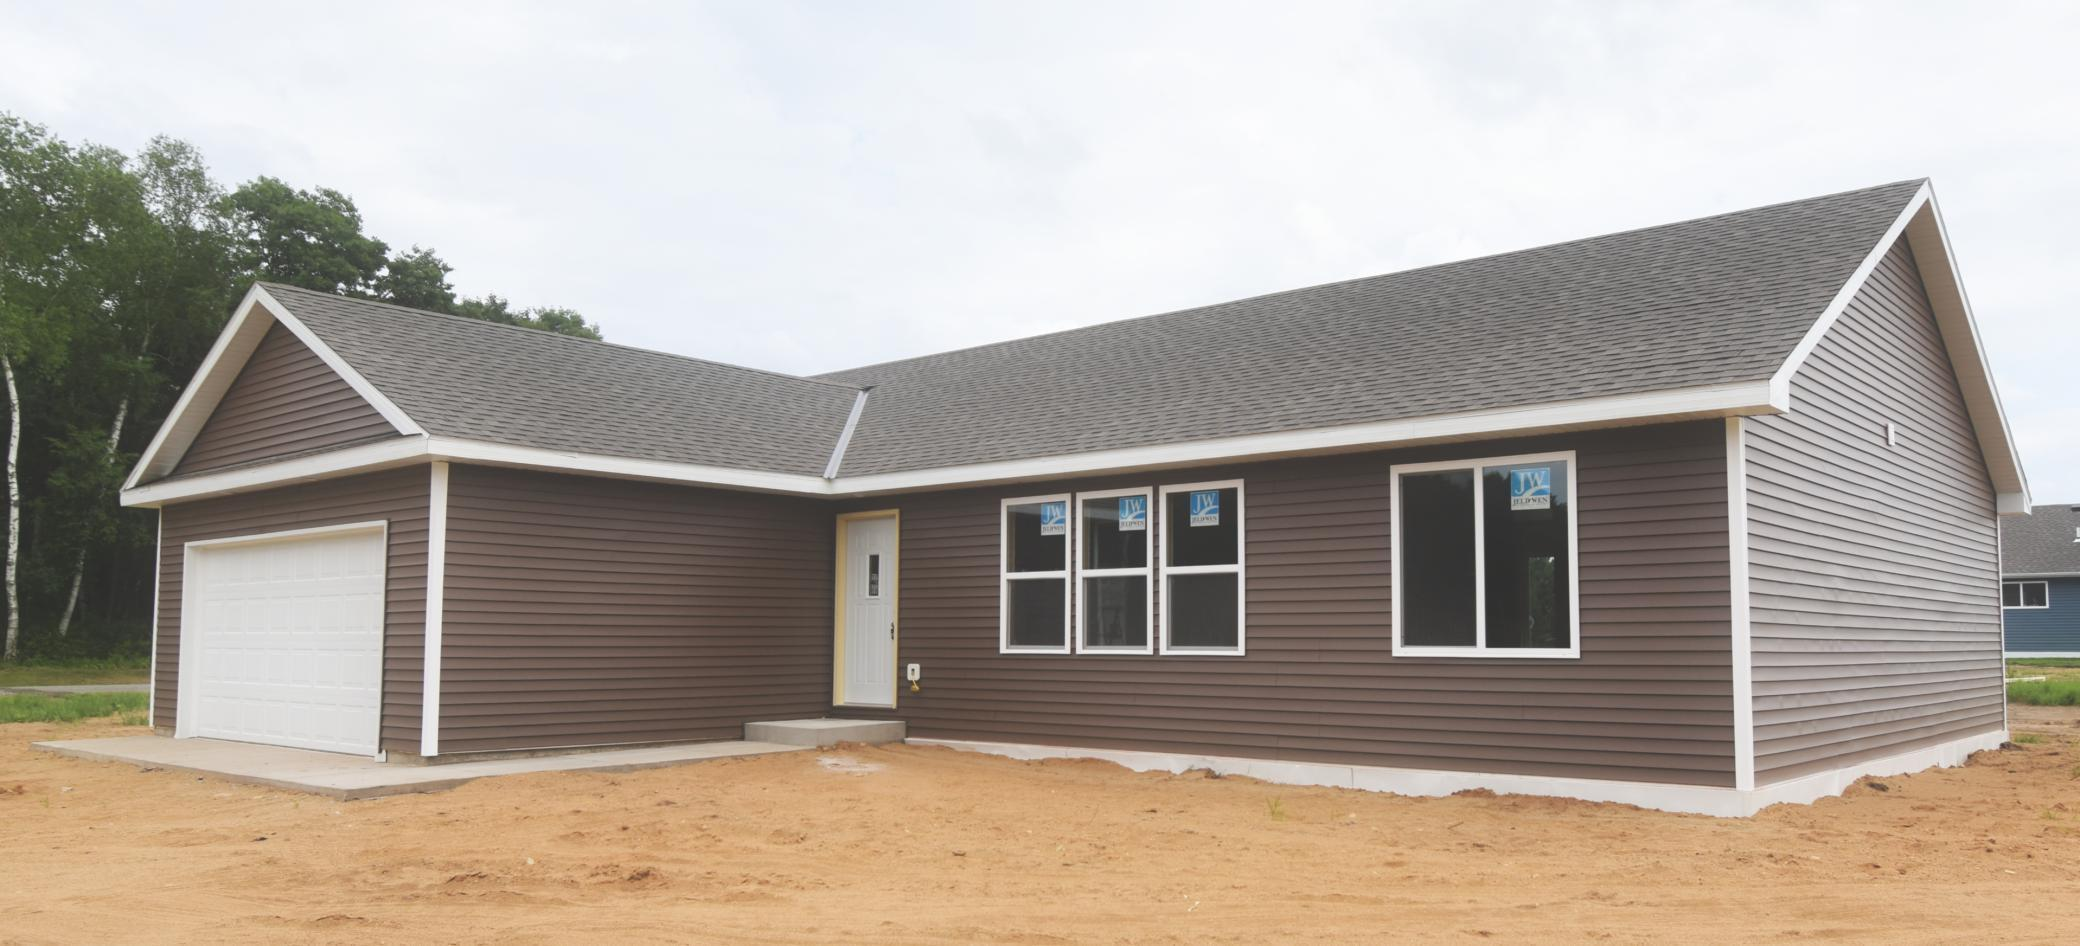 9239 3rd Property Photo - Breezy Point, MN real estate listing